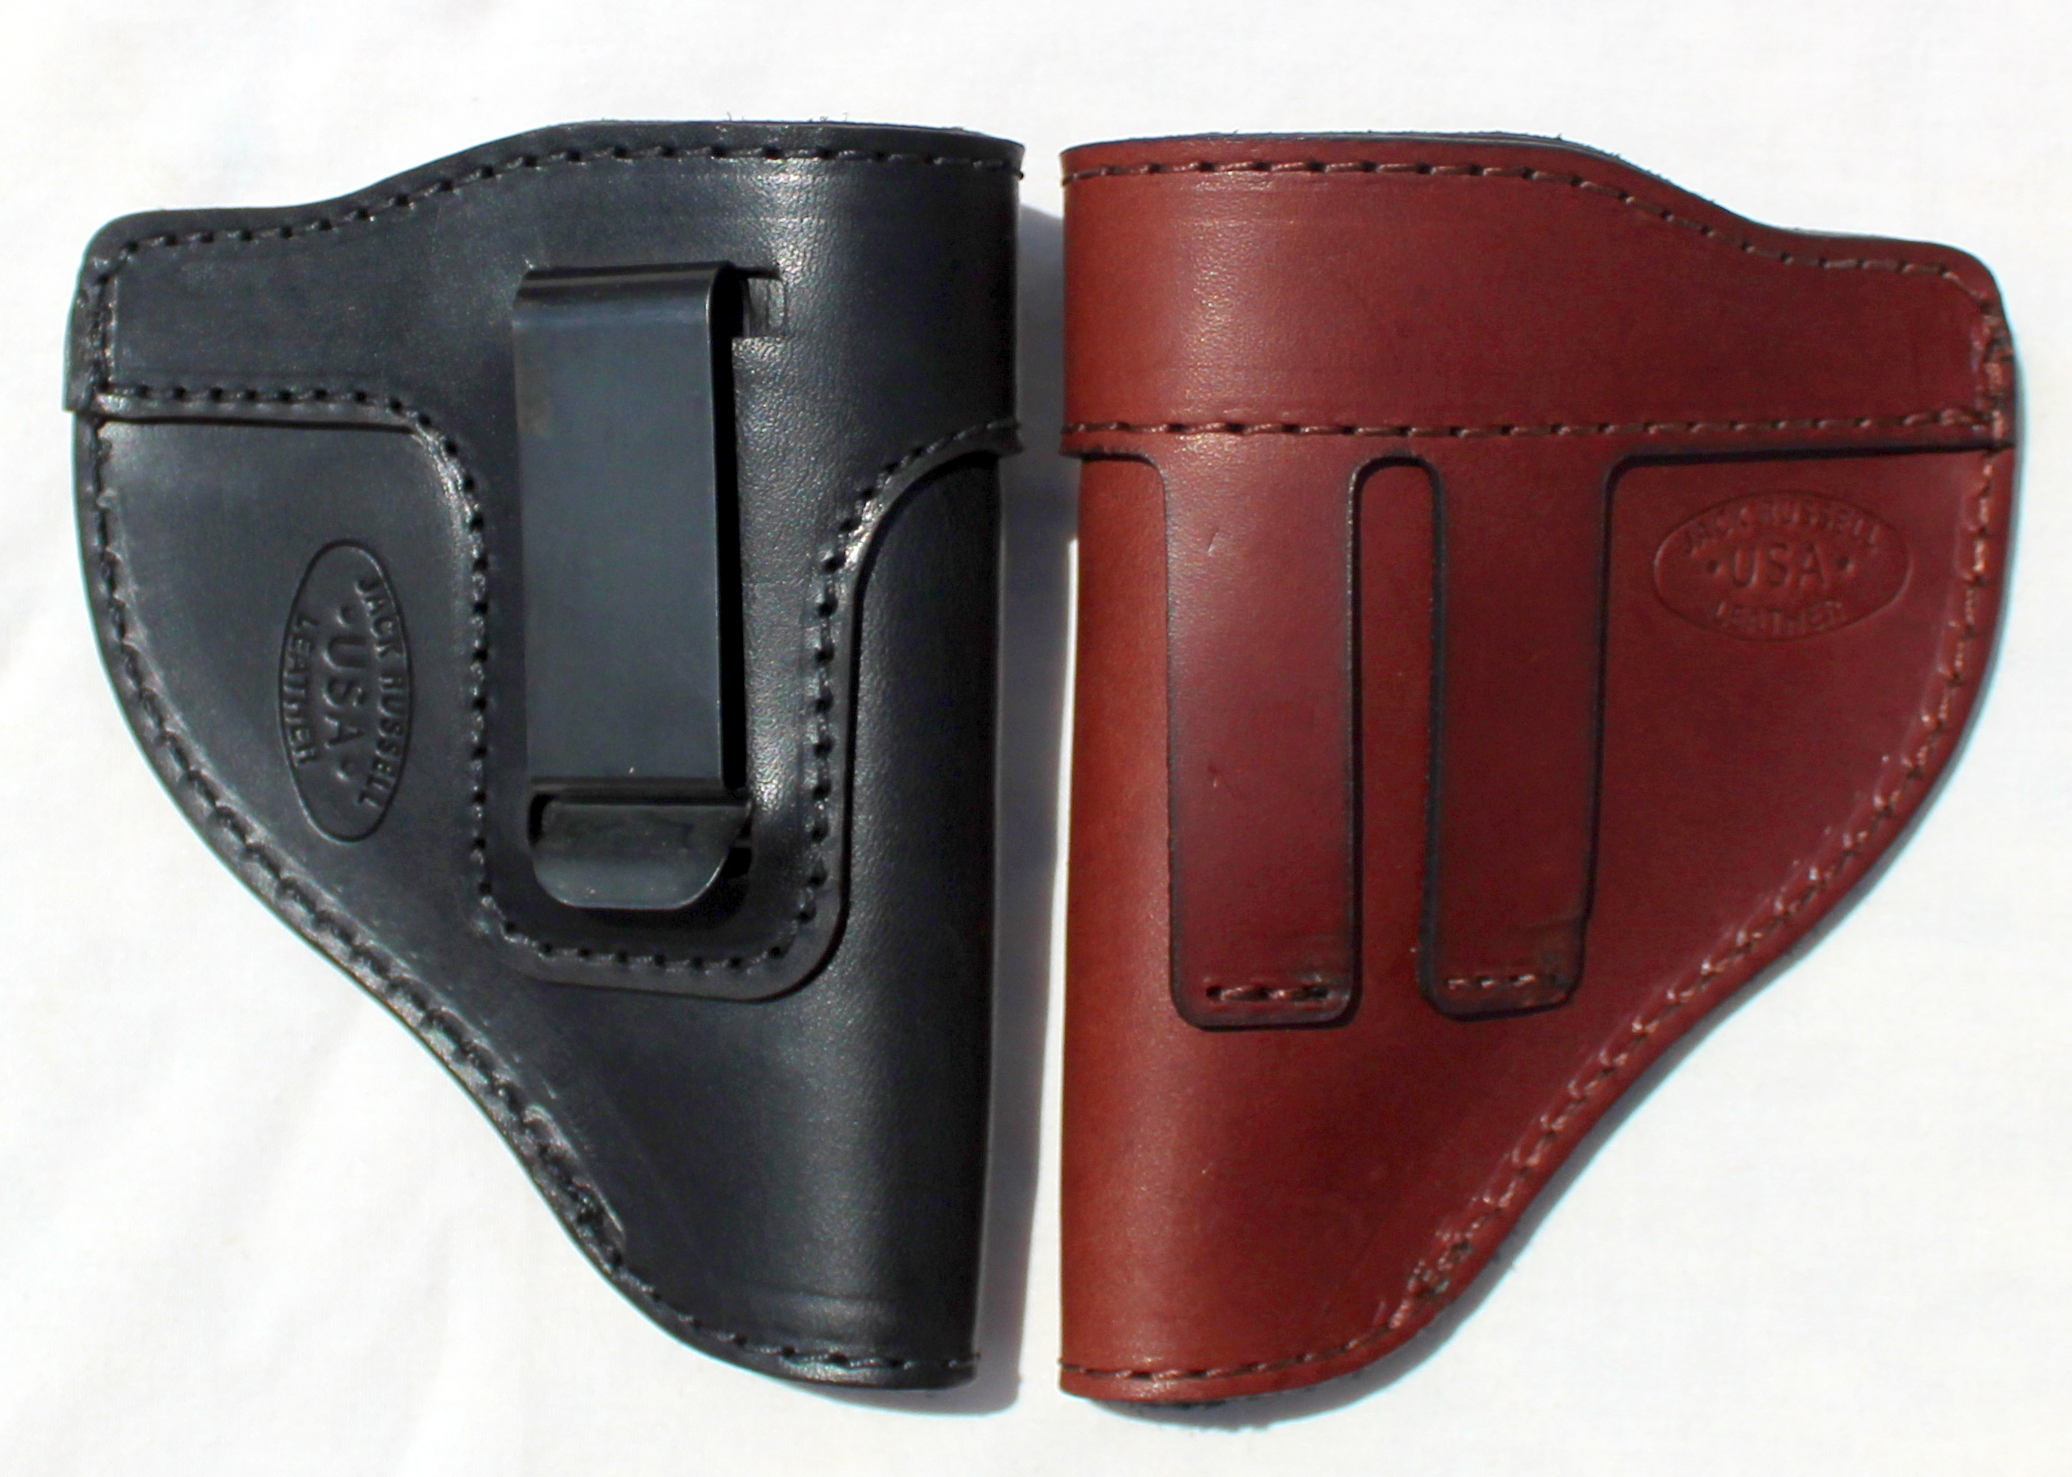 The Defender Leather IWB Holster - Fits Most J Frame Revolvers Incl. Ruger LCR, S&W 442/642, Taurus, Charter & Most .38 Special Revolvers - Made in USA - BLACK